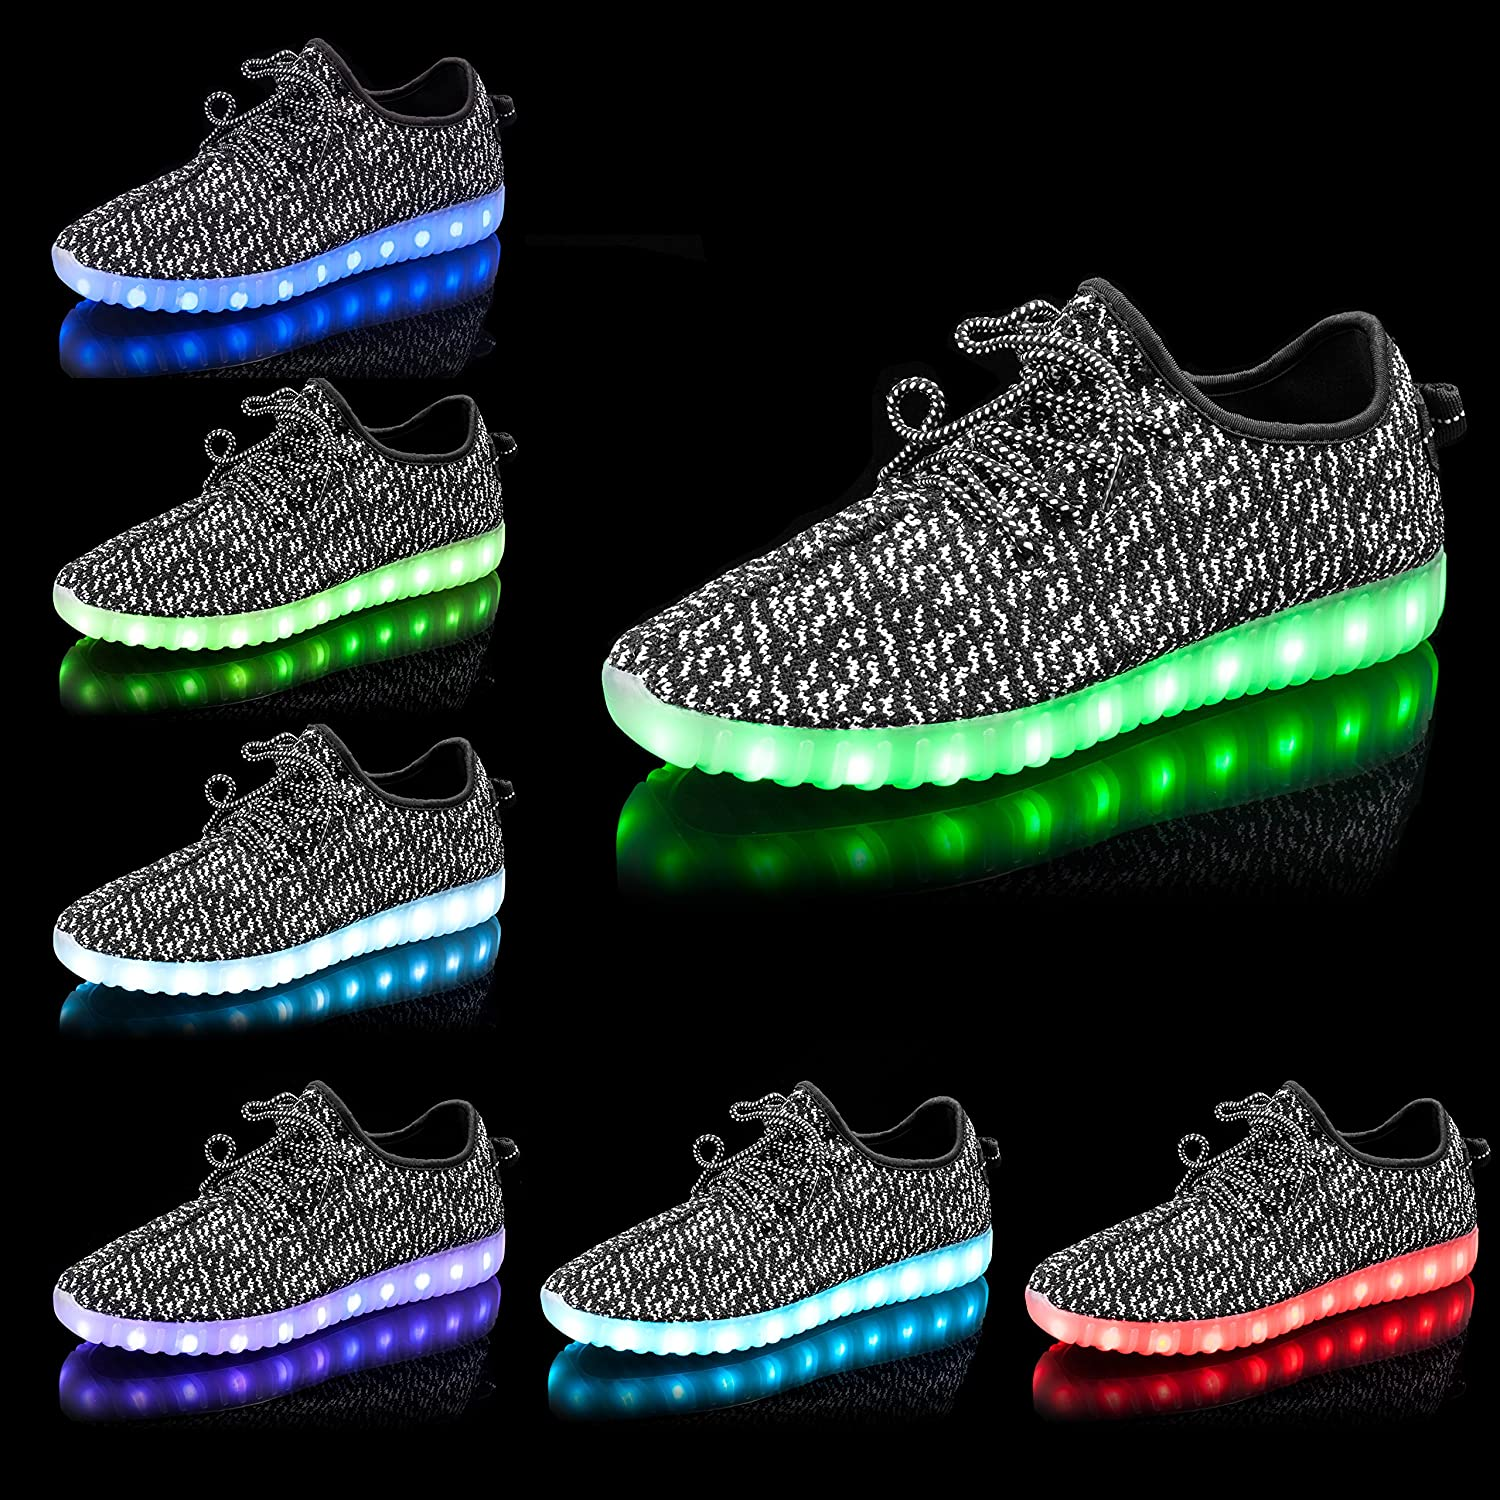 Shinmax LED Shoes 7 Colors Light up Shoes of Men Women with USB Chargable  for Valentines f4202951d4fd